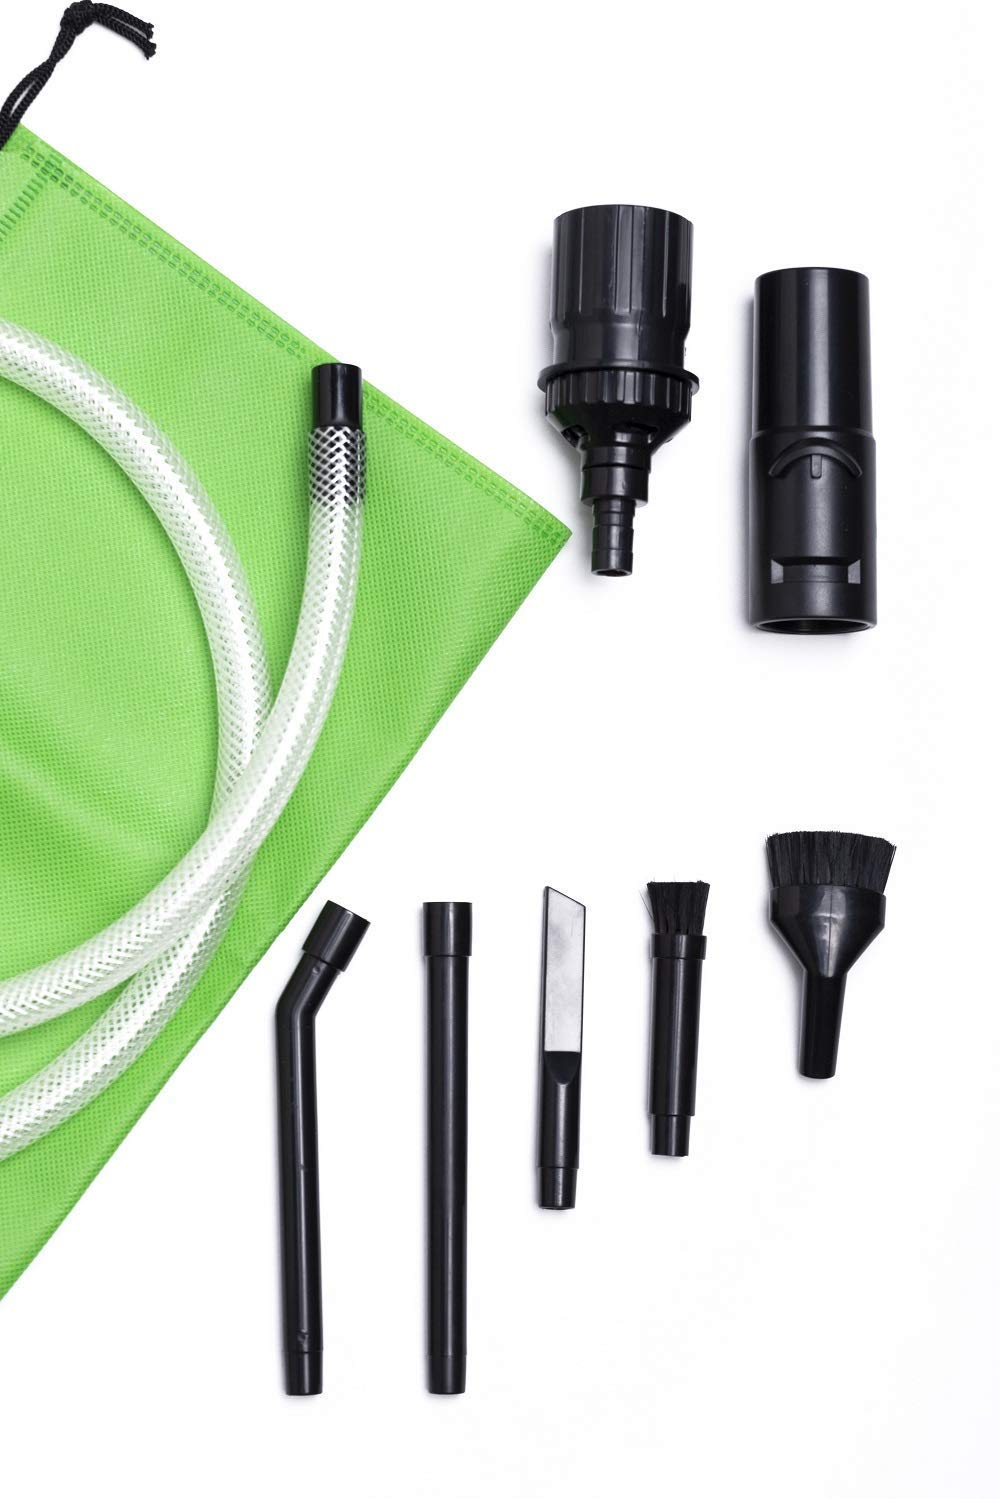 Green Label Micro Vacuum Accessory Kit for Dyson DC50 Animal and Multi-Floor Upright